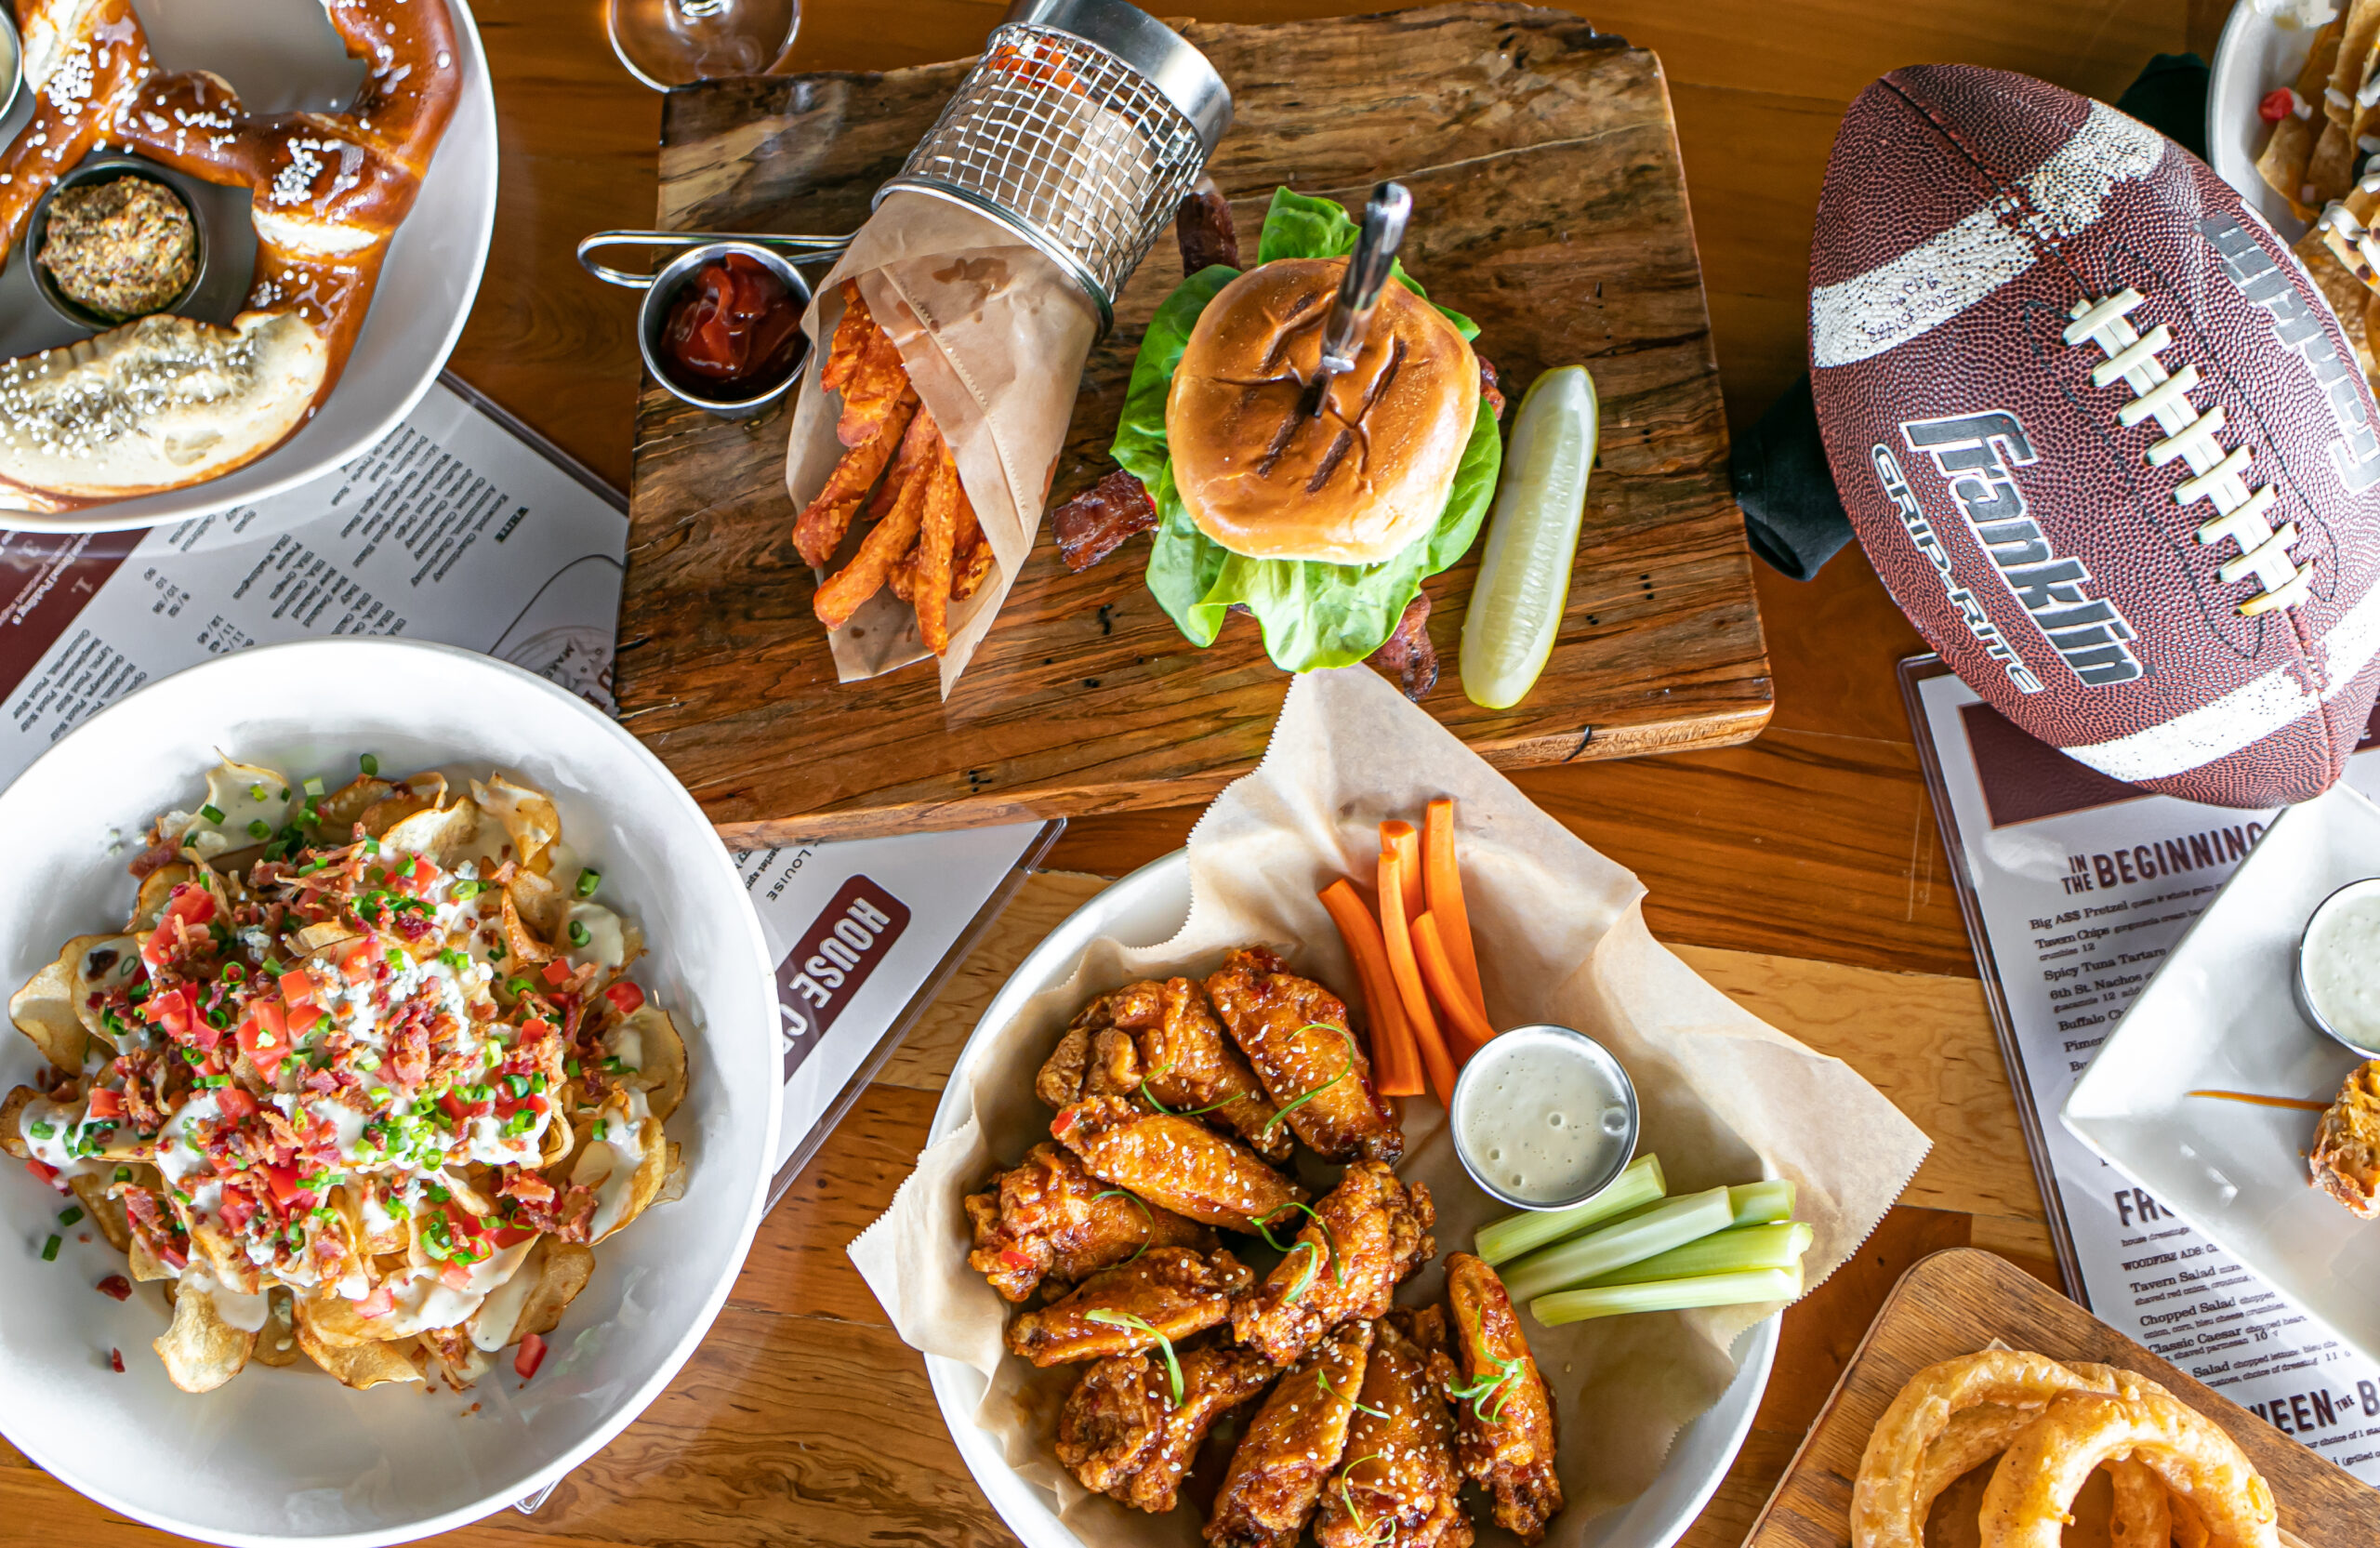 Football at McCray's | Lawrenceville, Midtown, Smyrna, East Cobb